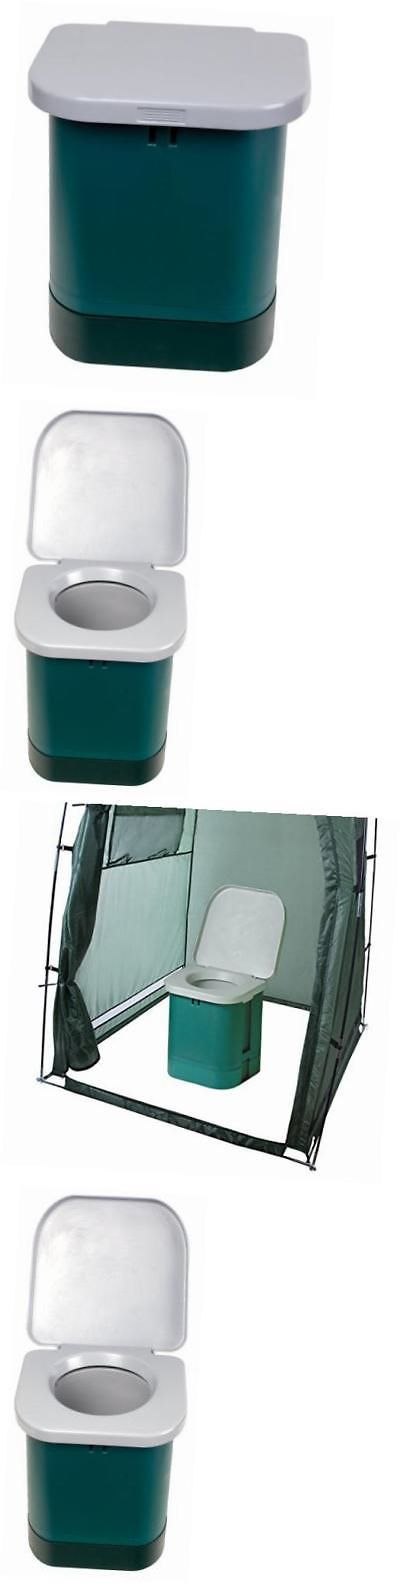 Portable Toilets and Accessories 181397: 273-100 Portable Camp Toilet (14 X 14 X 14 - Inch) -> BUY IT NOW ONLY: $68.33 on eBay!